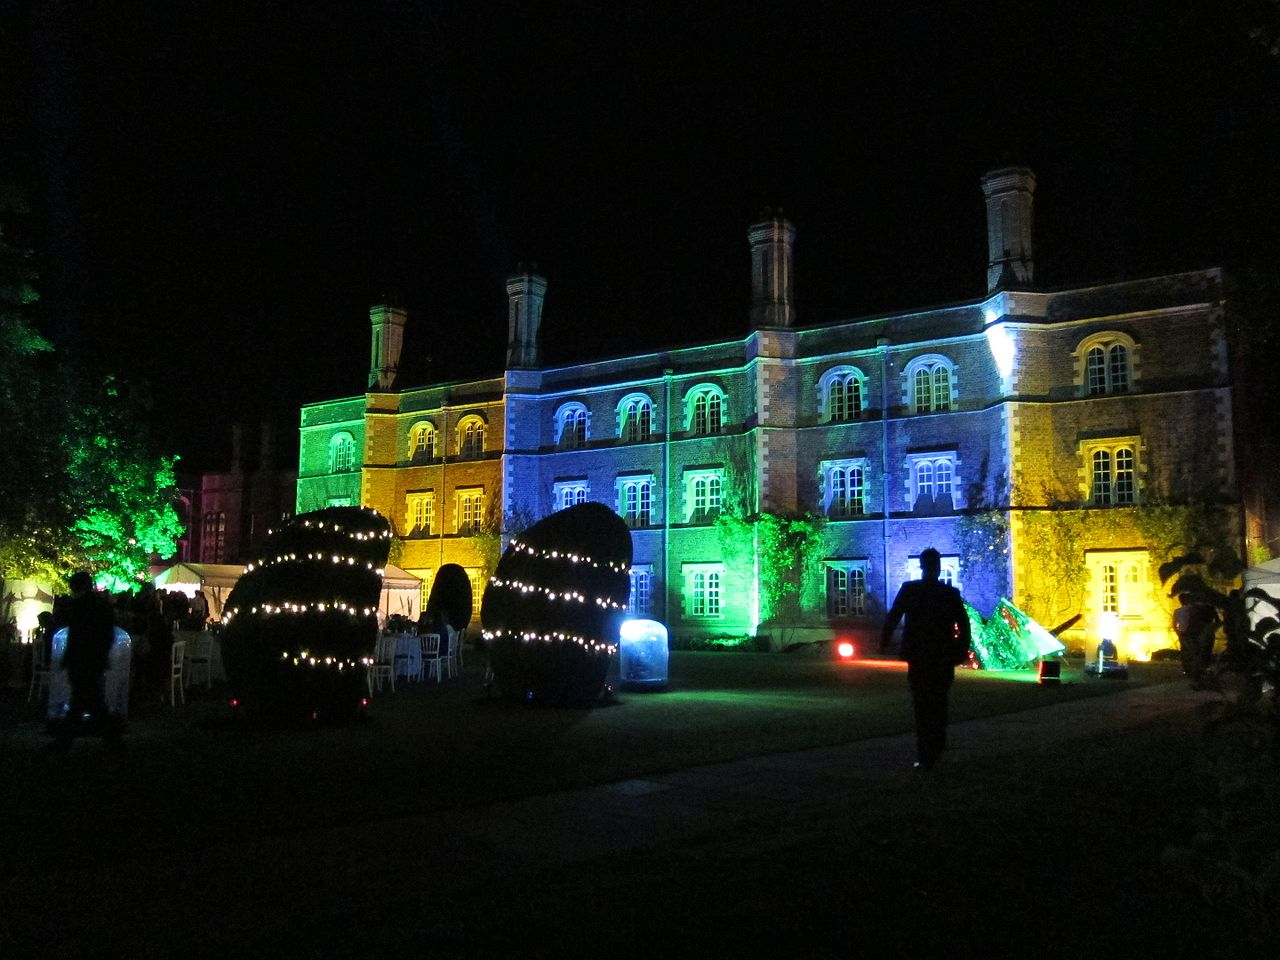 Jesus College's transformation for their annual May ball.